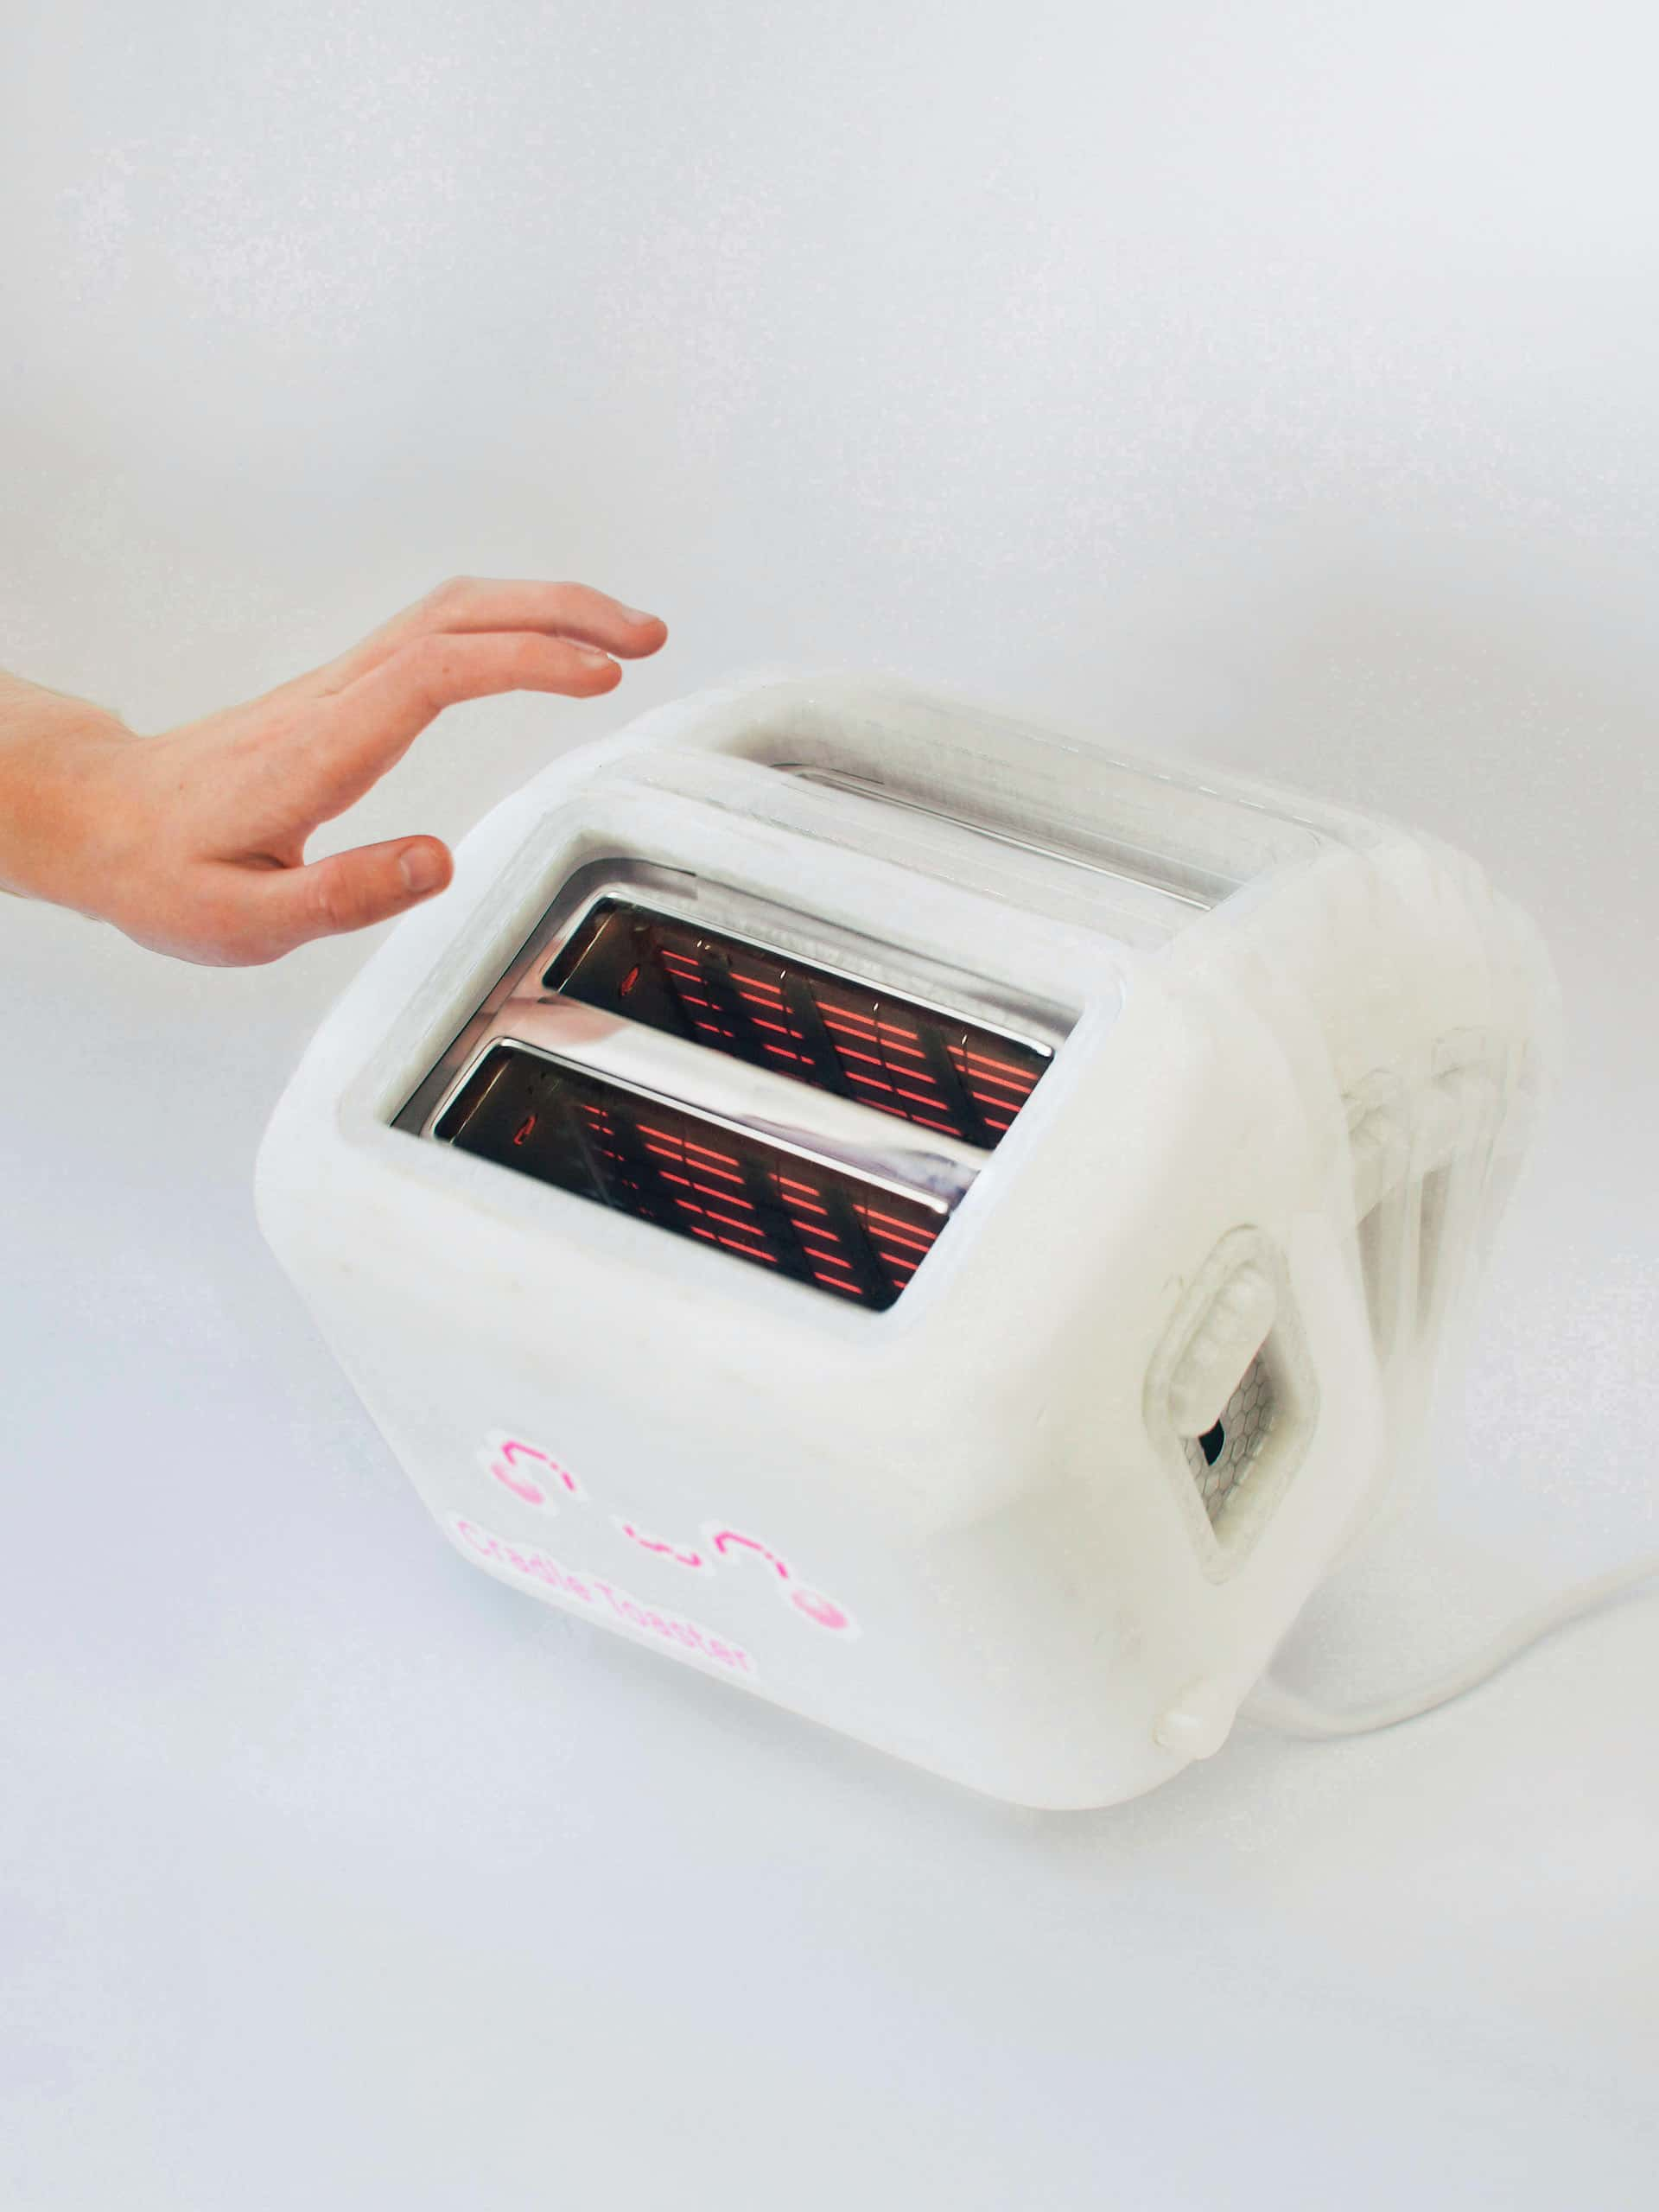 Eight conceptual toasters of the near-future kitchen—imagining a circus stage where through technology, autonomous objects compete for our attention and evolve to meet human needs with parasitic and tribalistic behaviour. Managing Newness is a vision of an expanded internet-of-things pushed to the point of satire.